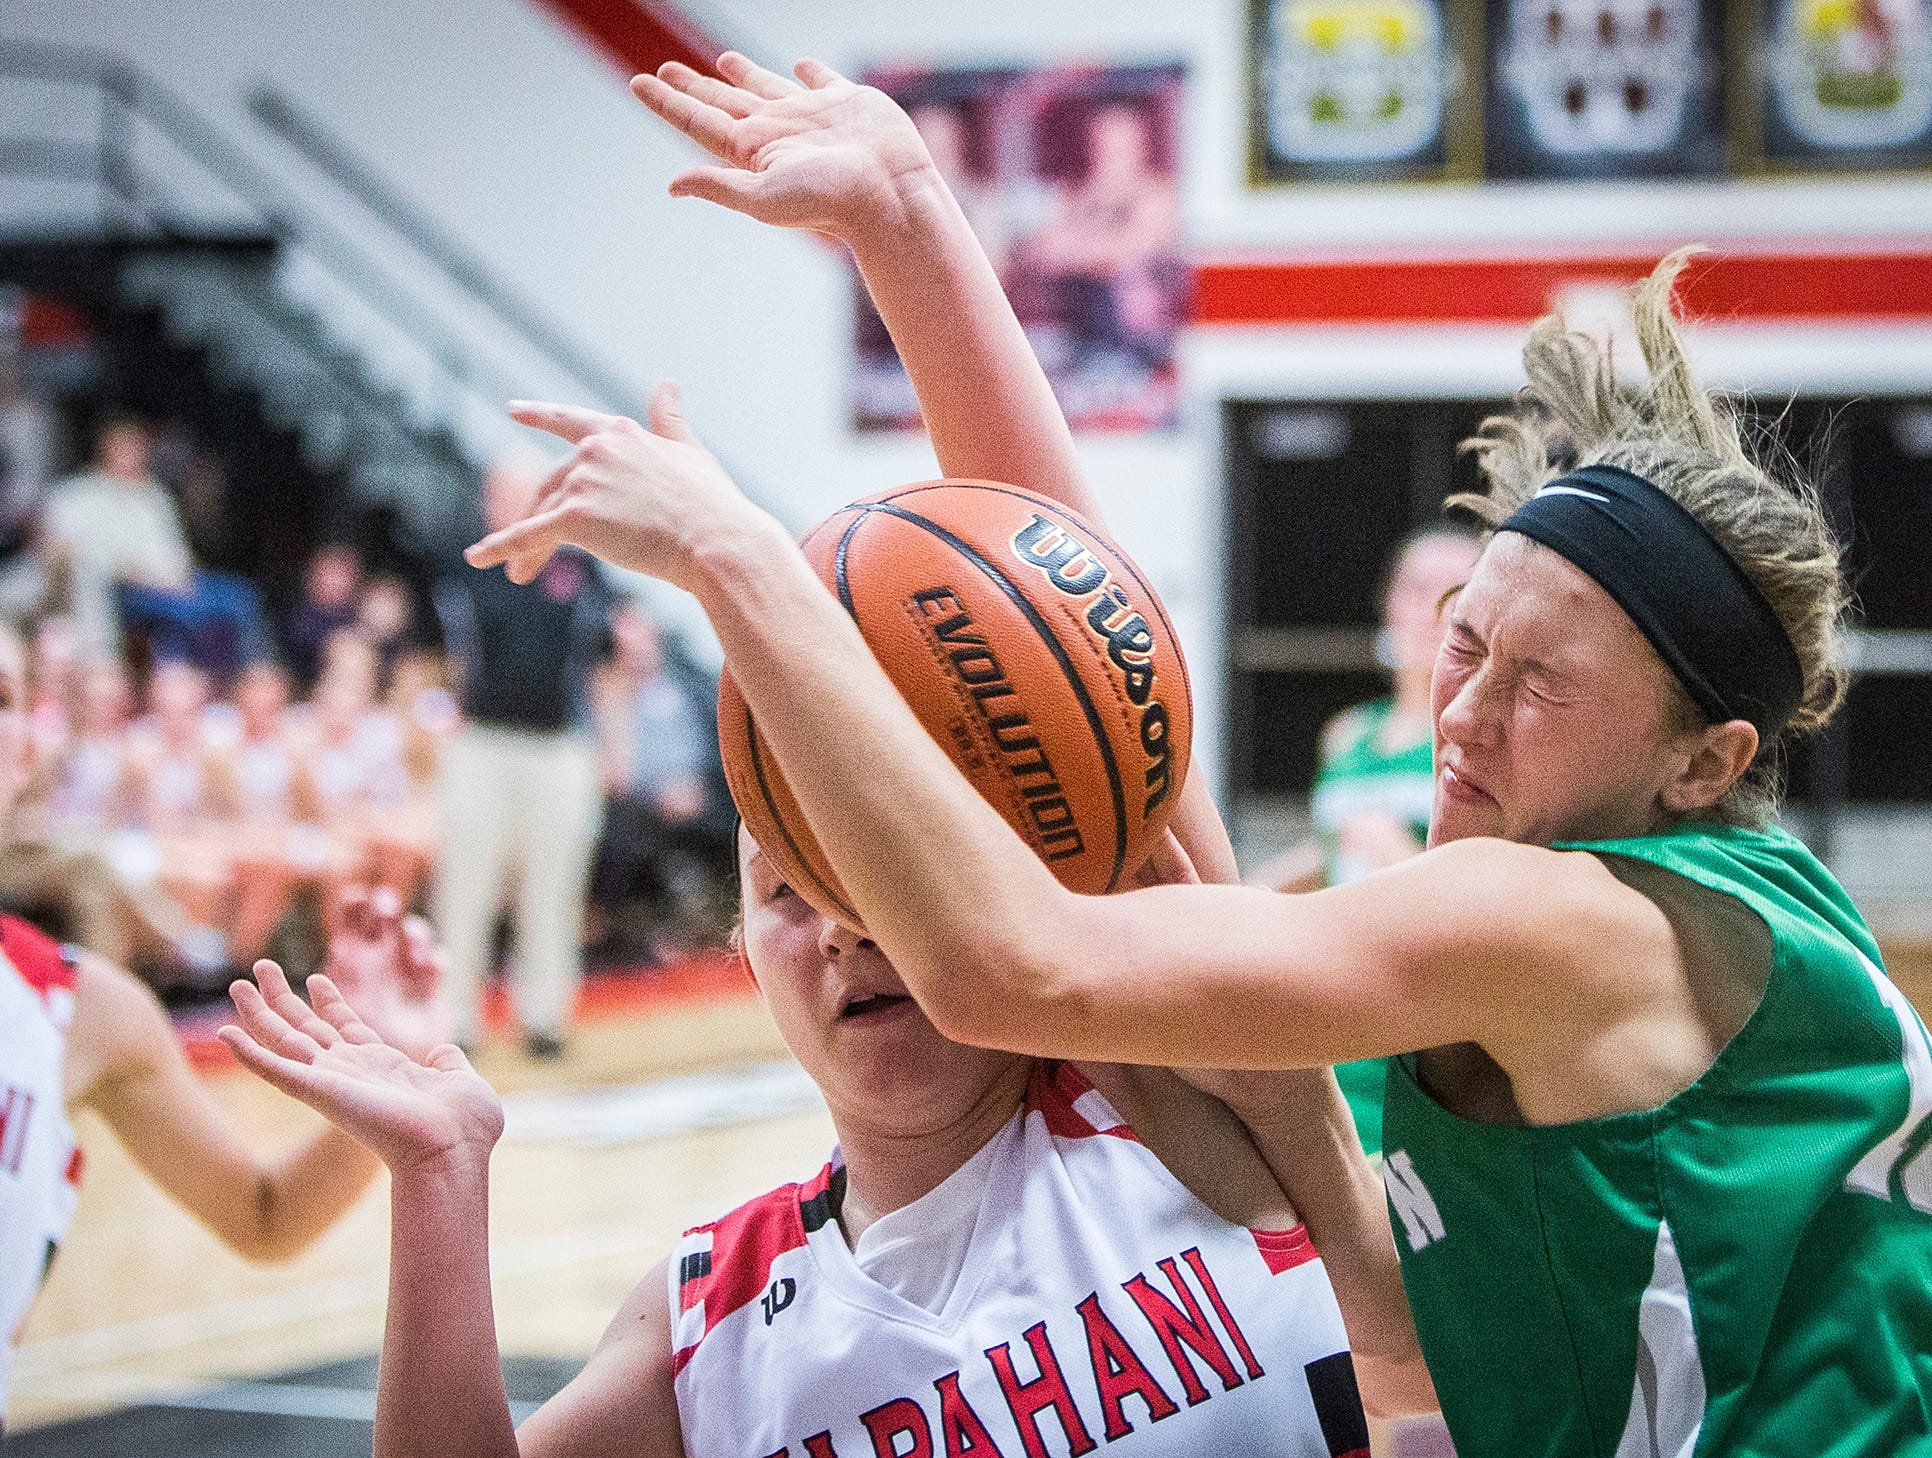 Yorktown faces off against Wapahani during their game at Wapahani High School Tuesday, Dec. 4, 2018.